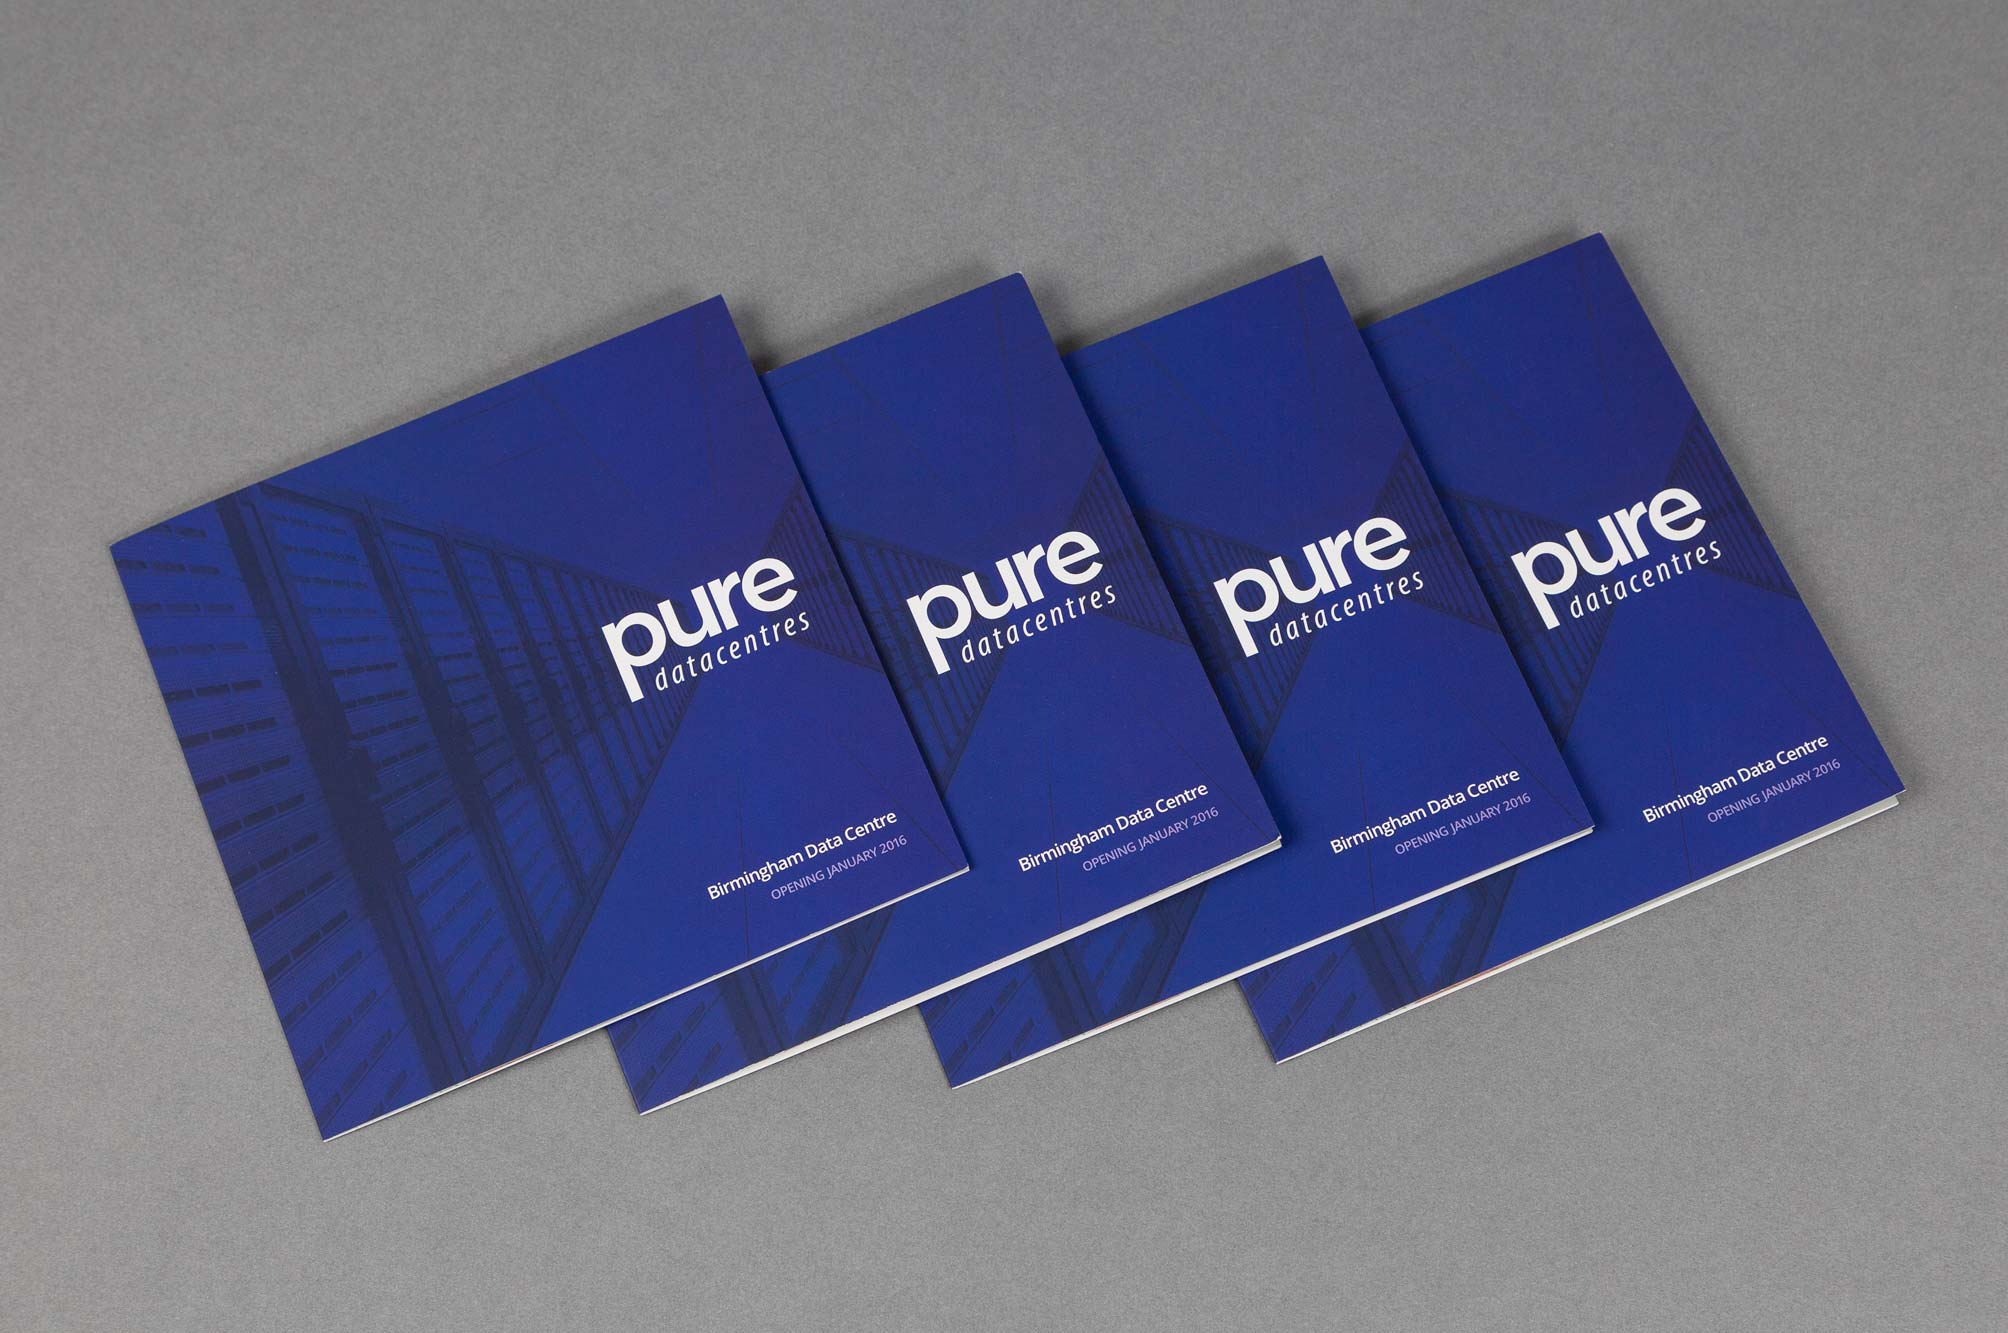 Pure-Data-Centres-Wide-06